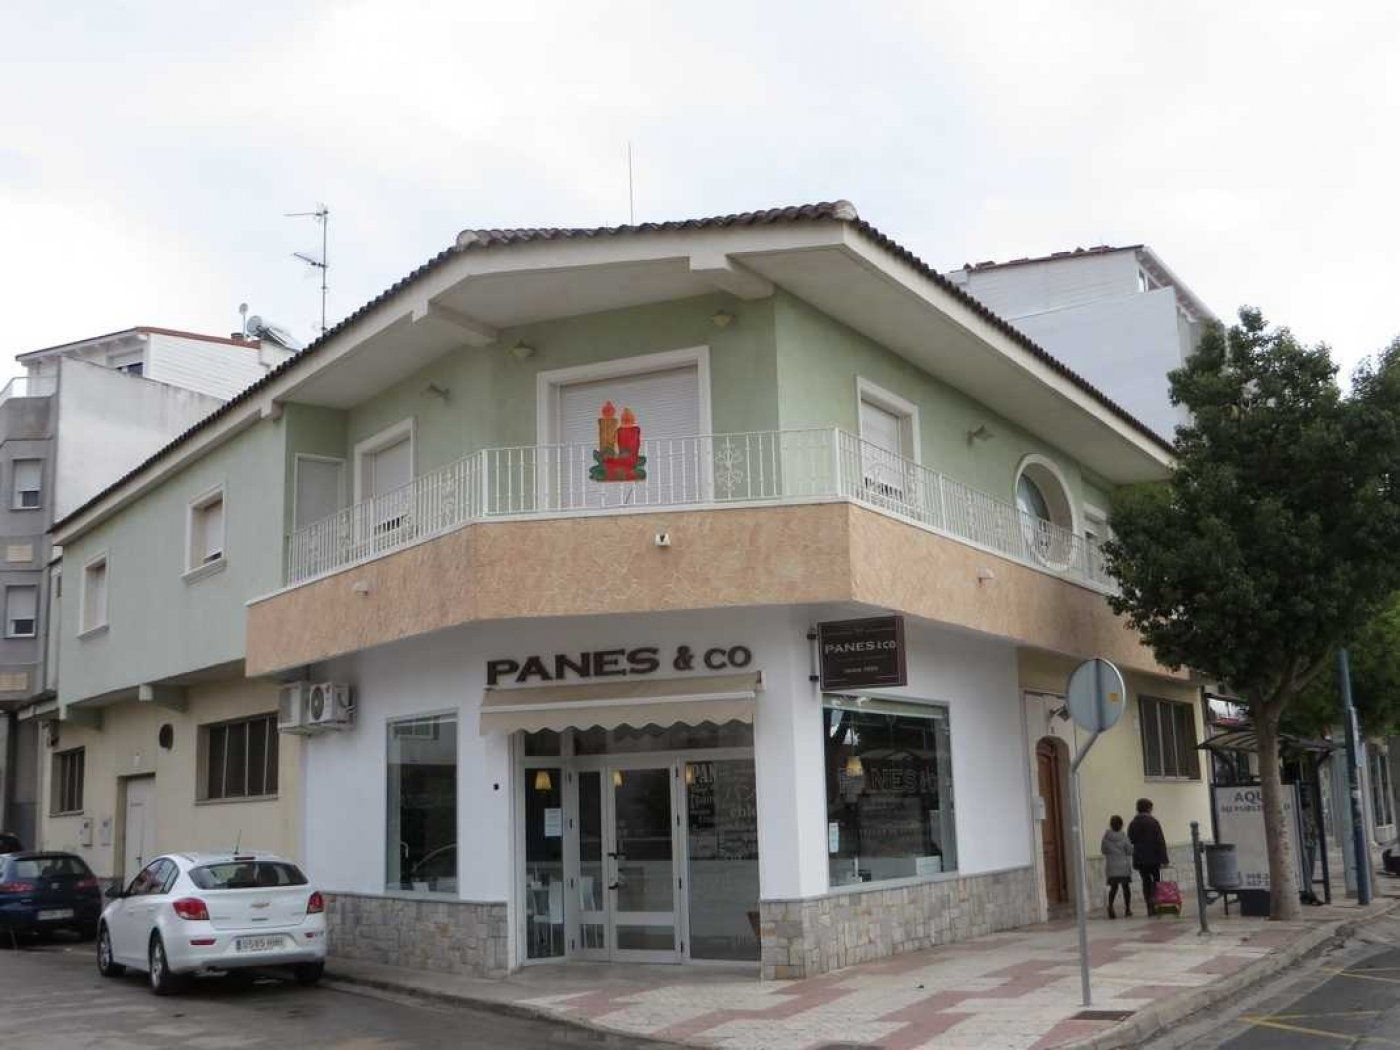 Locale commerciale in San Javier. Local comercial en san javier